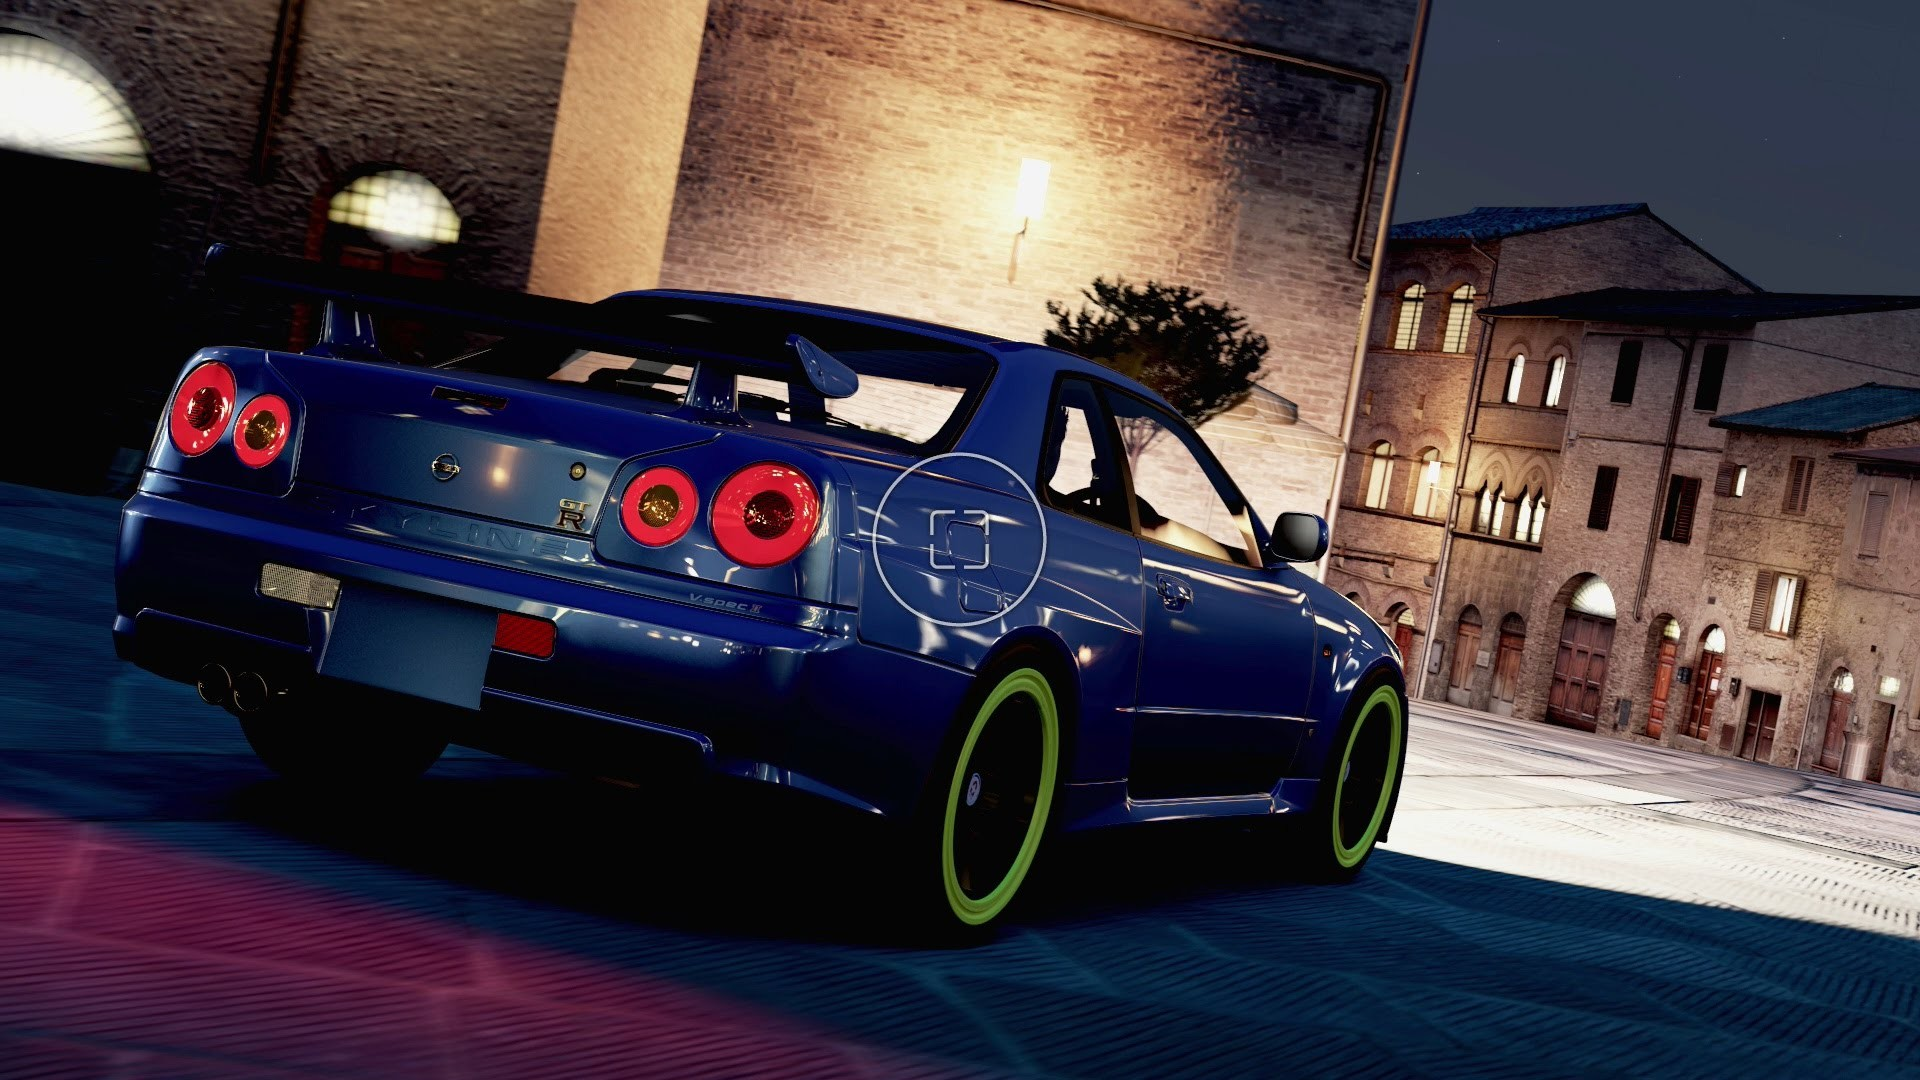 Nissan Skyline Gtr R32 Hd Wallpaper Phone Wallpapers